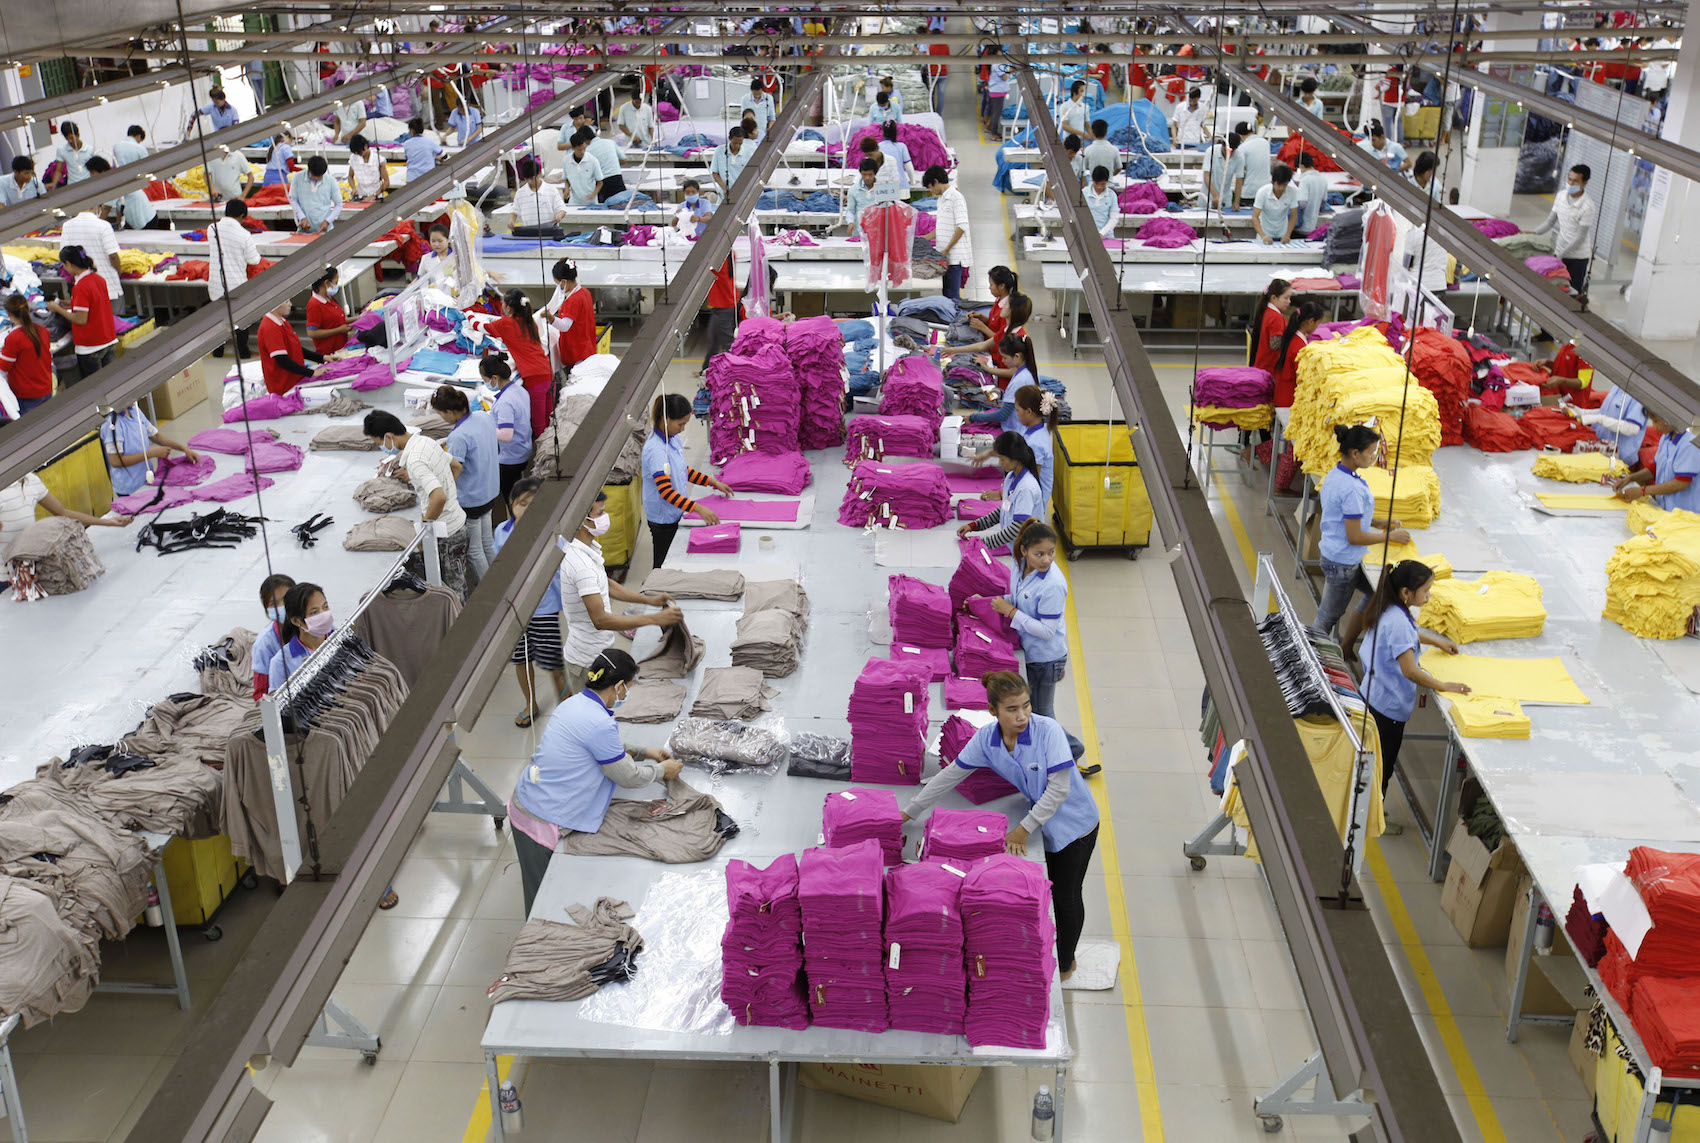 Cambodia Economy Garment Factory - Jun 2013